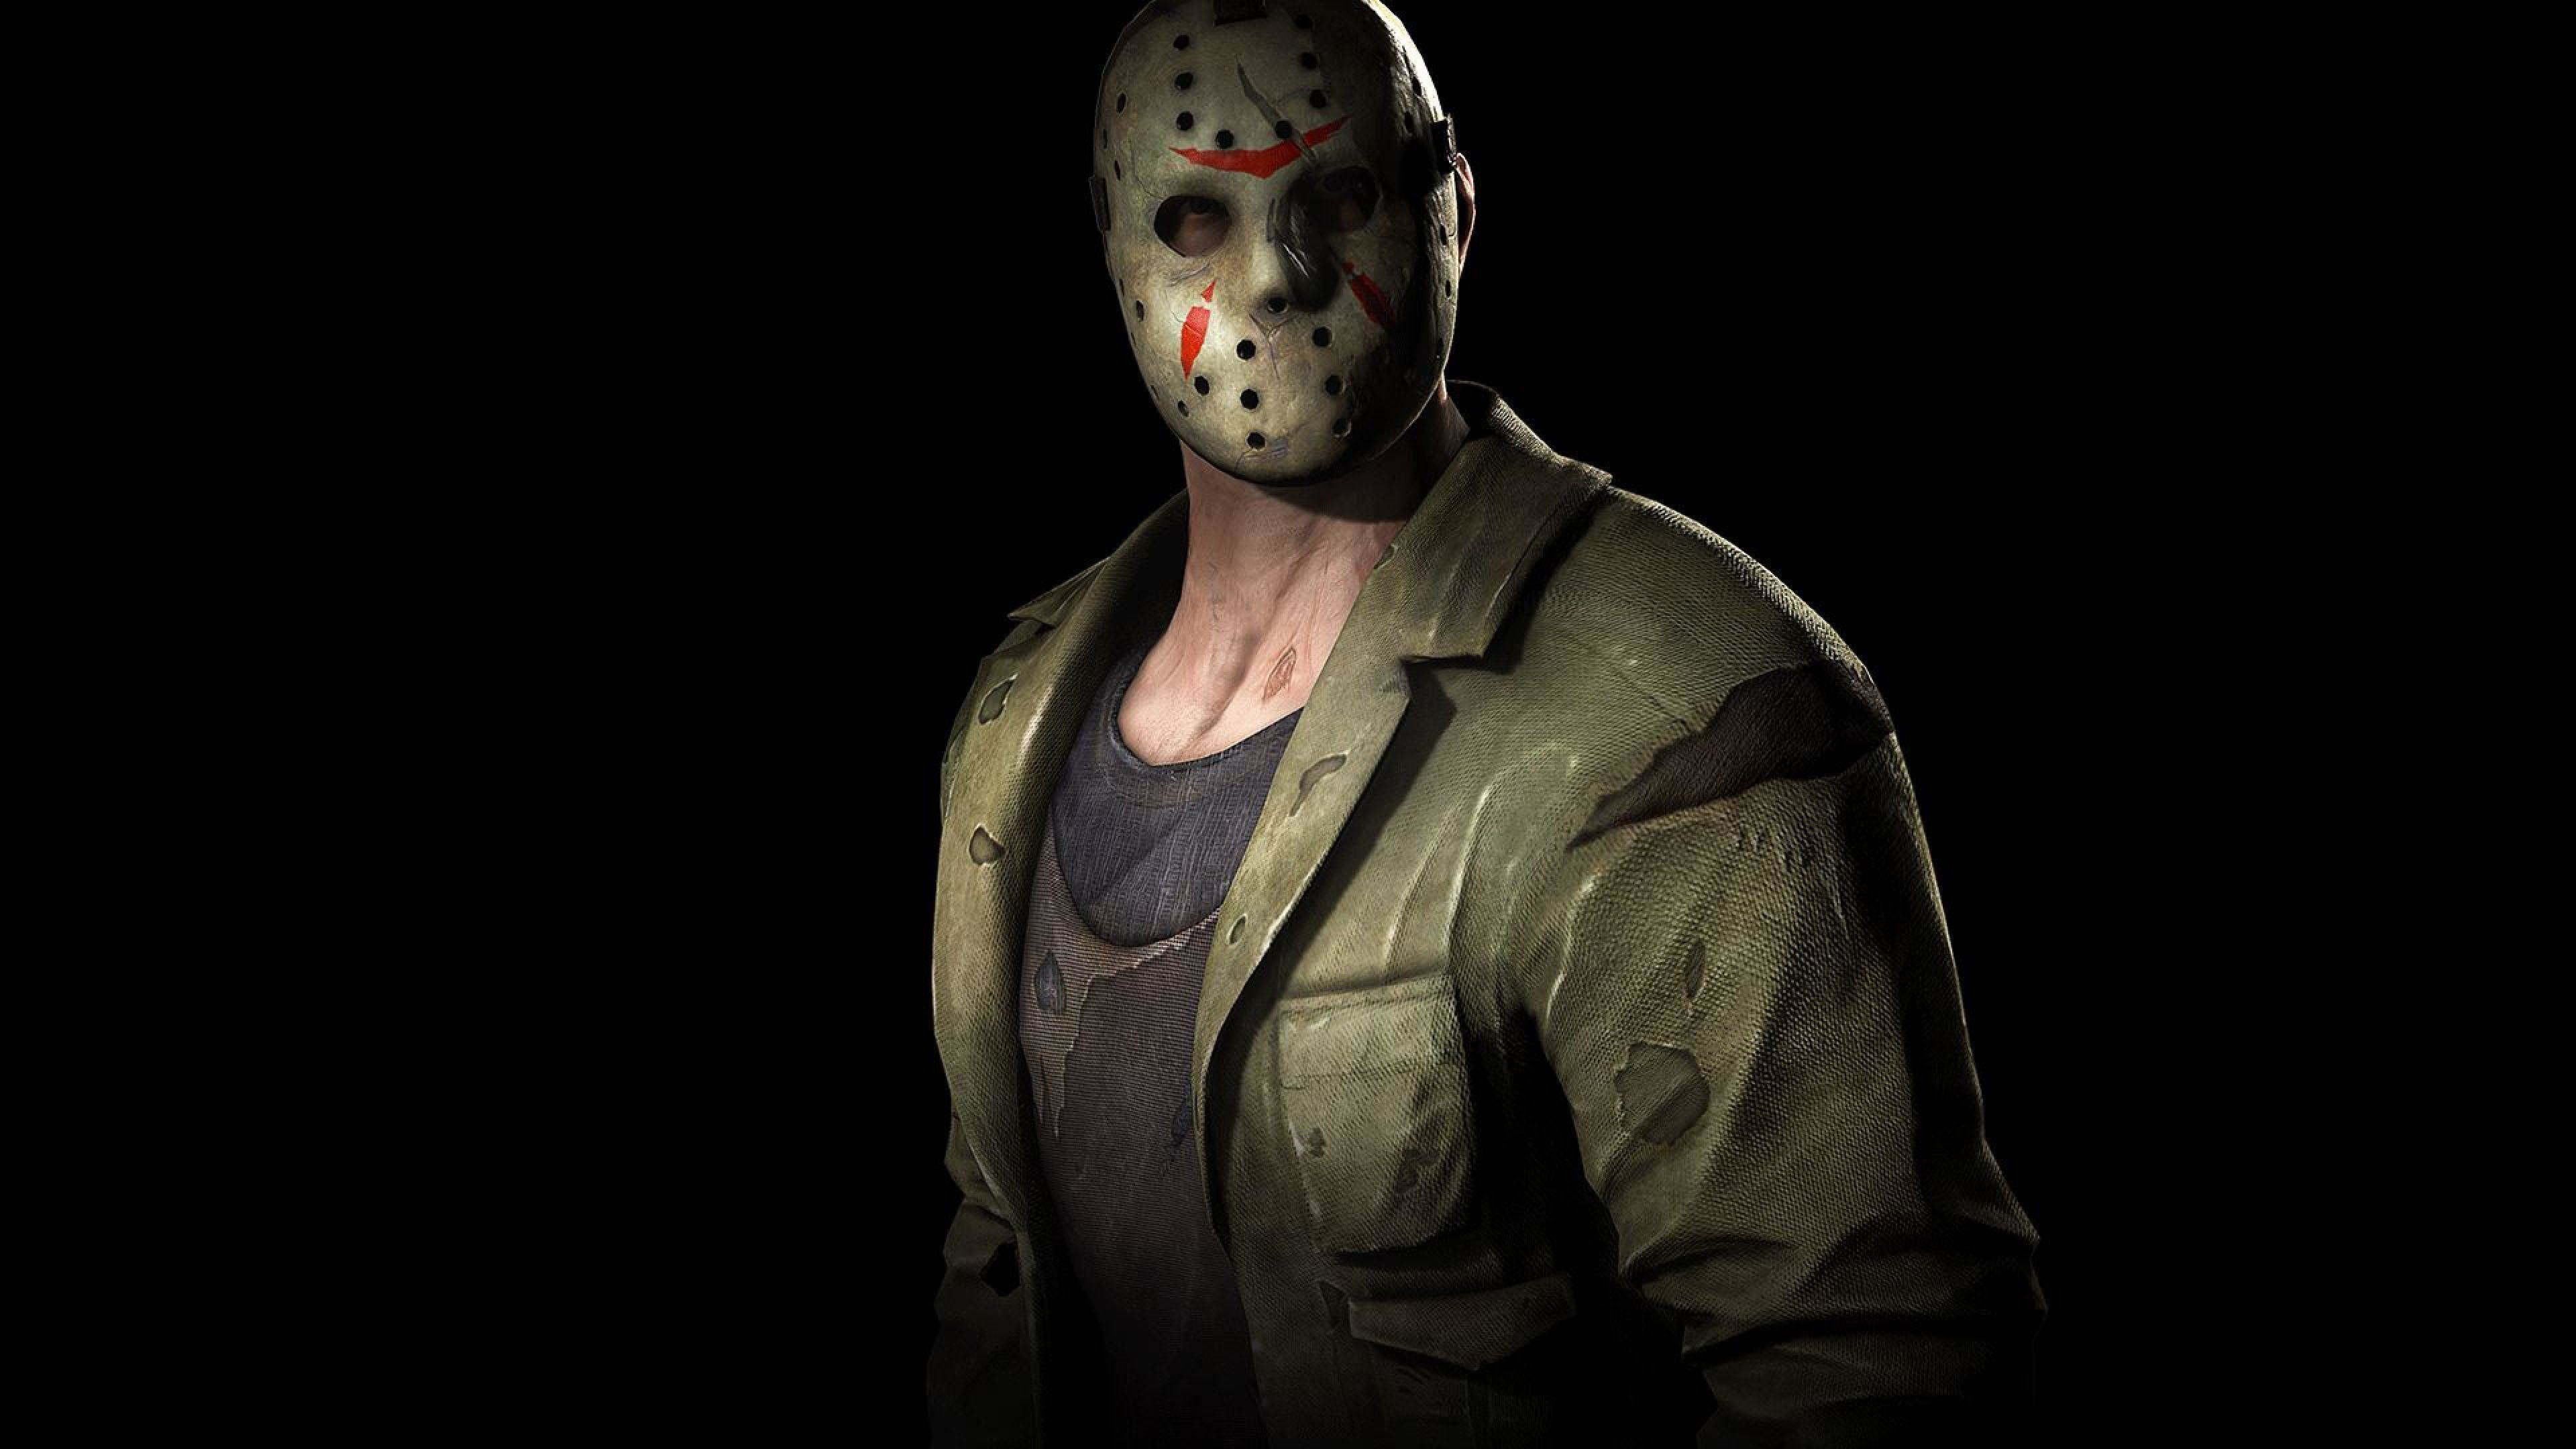 Res: 3840x2160, leatherface iphone wallpaper leatherface ...